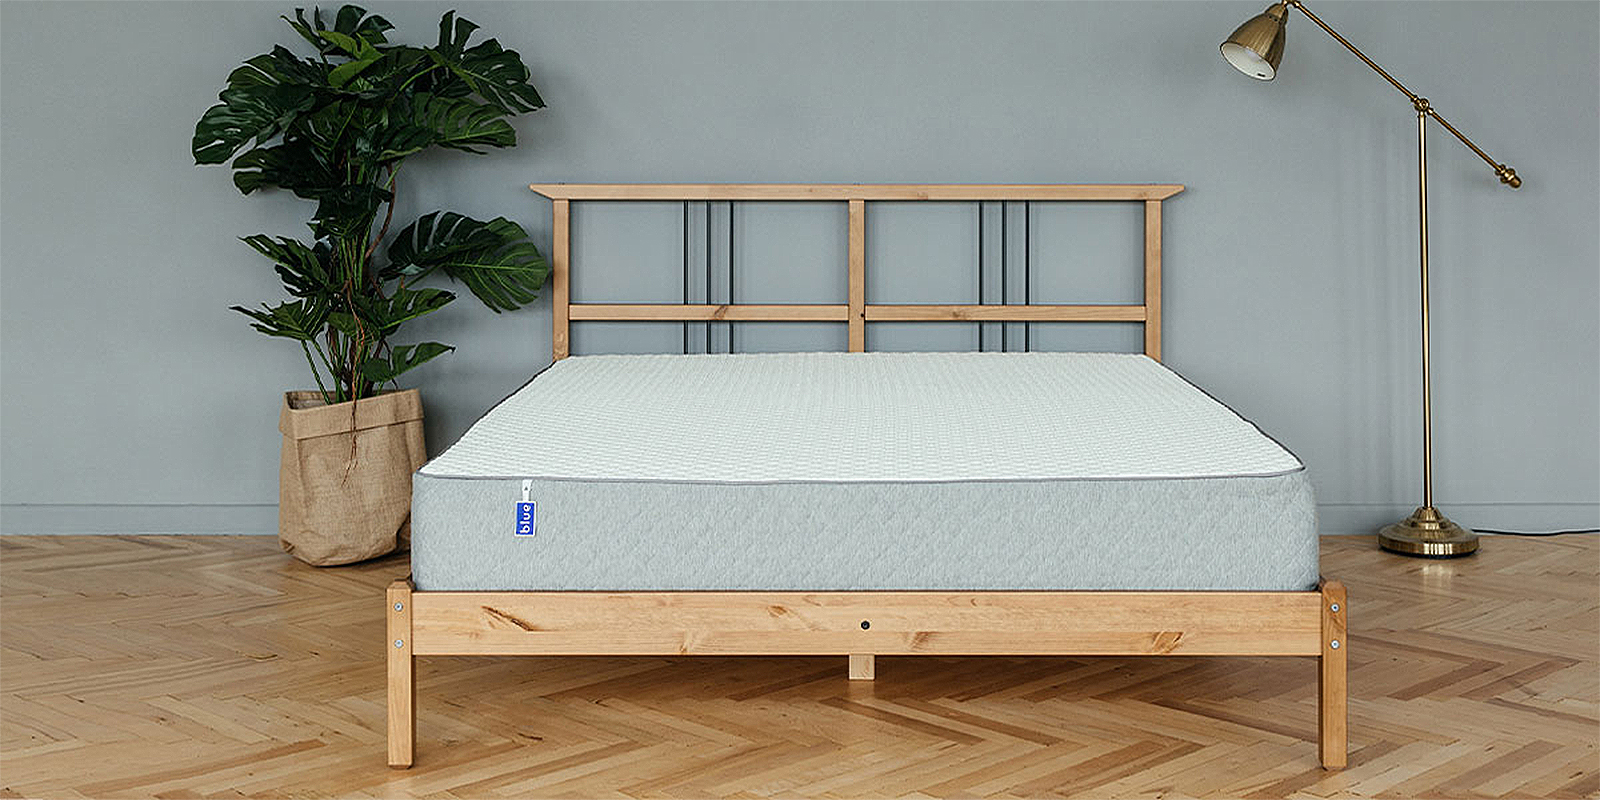 Матрас Blue Sleep 180х200